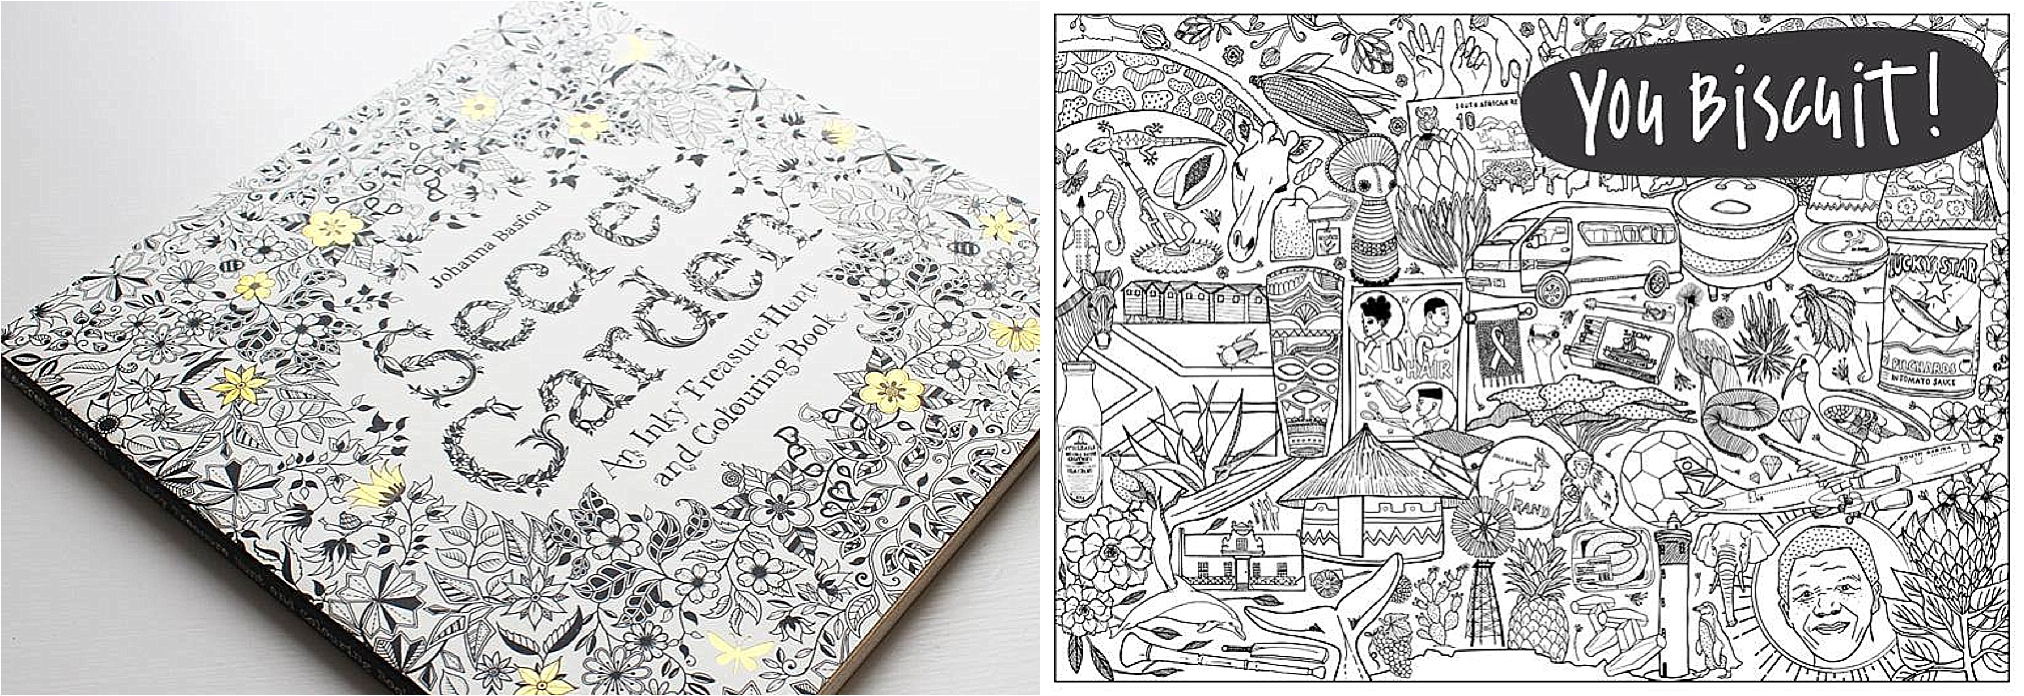 Adult coloring books posters you biscuit The Secret Garden